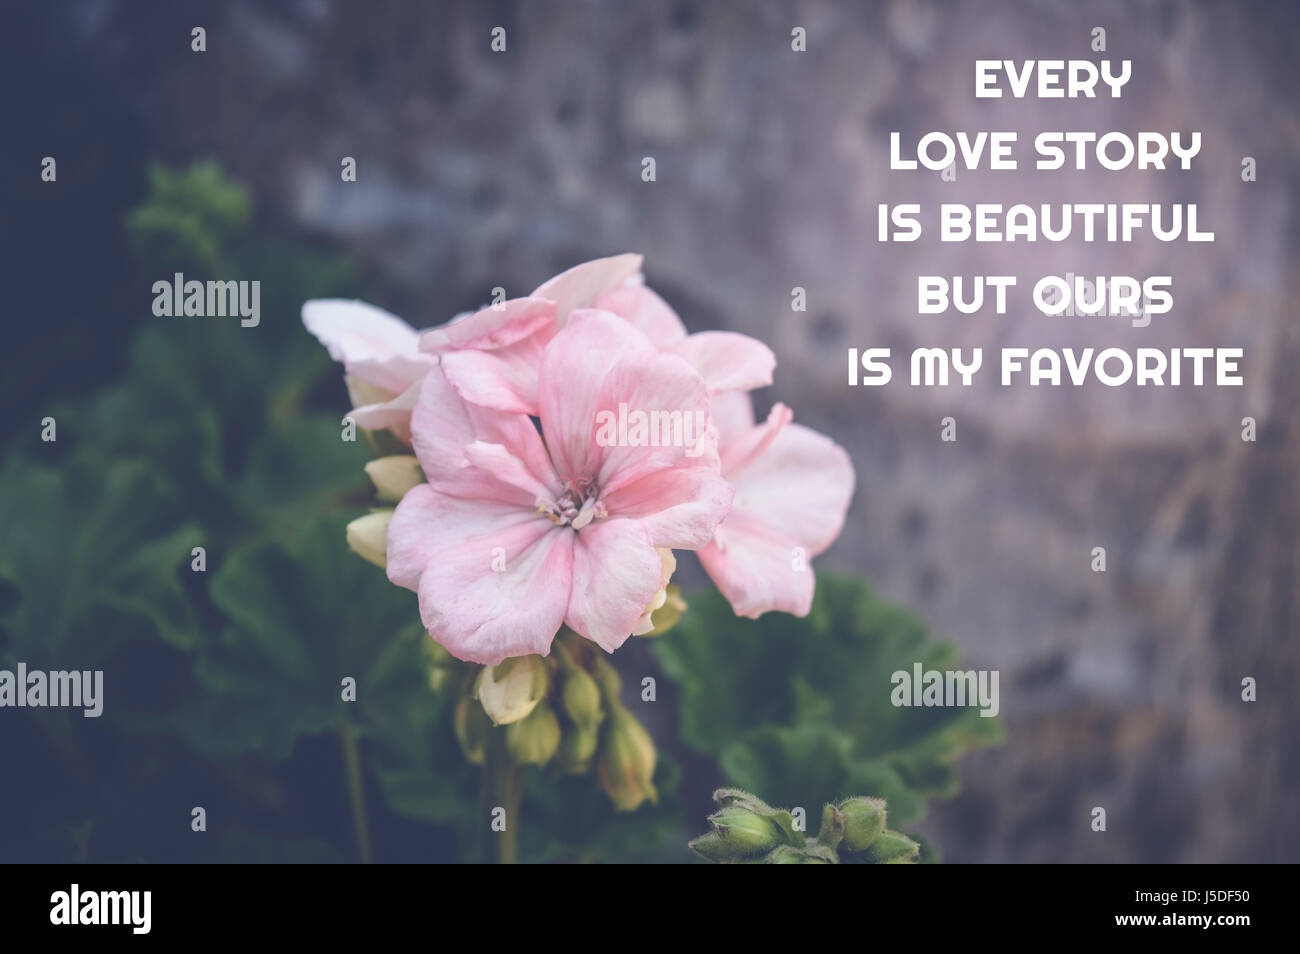 love quote pink flower background every love story is